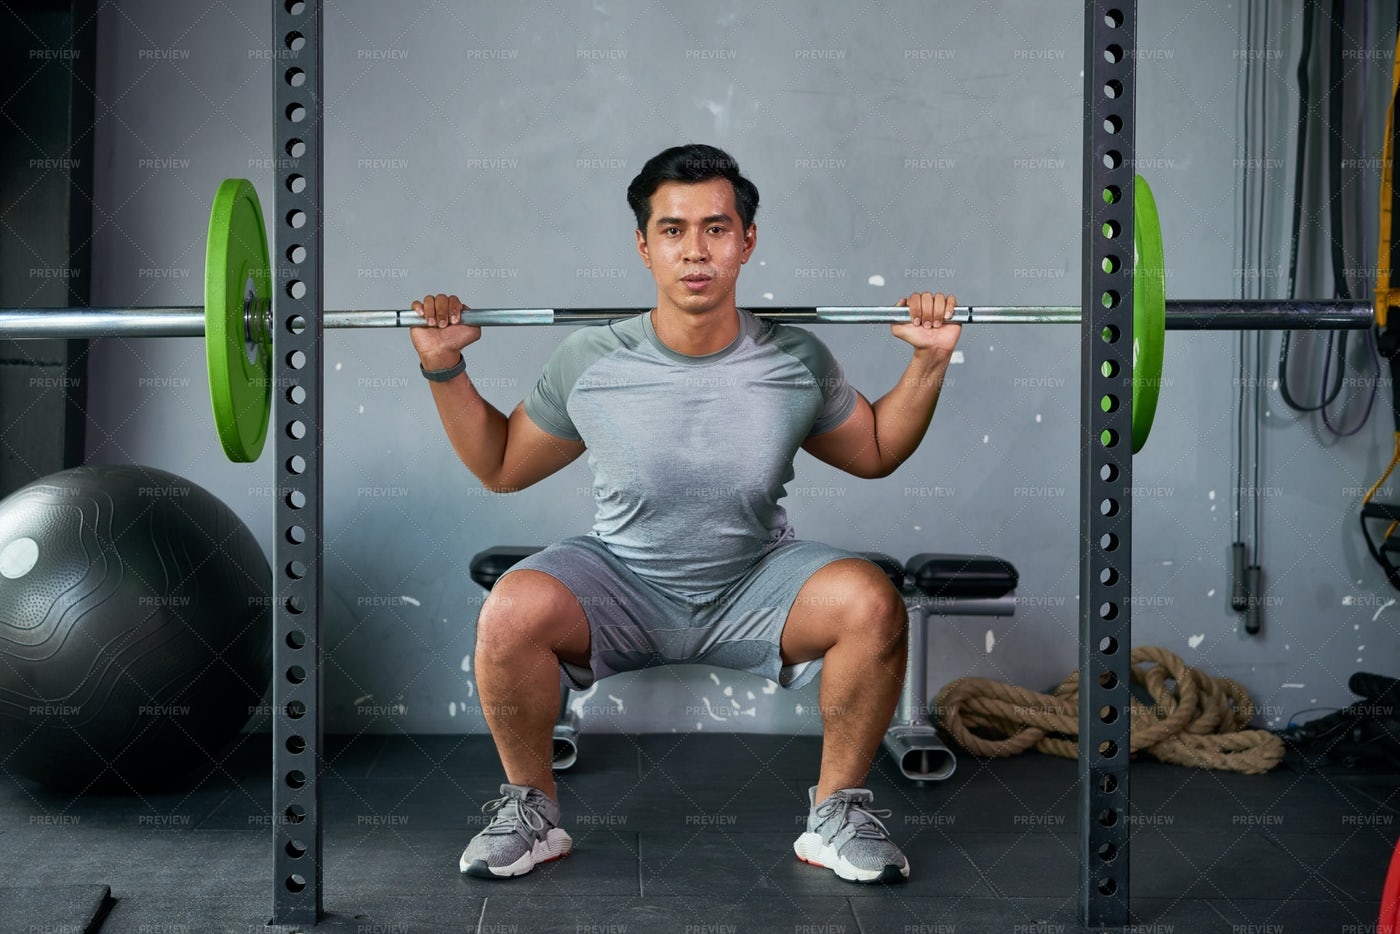 Bodybuilder Exercising With Dumbbell: Stock Photos